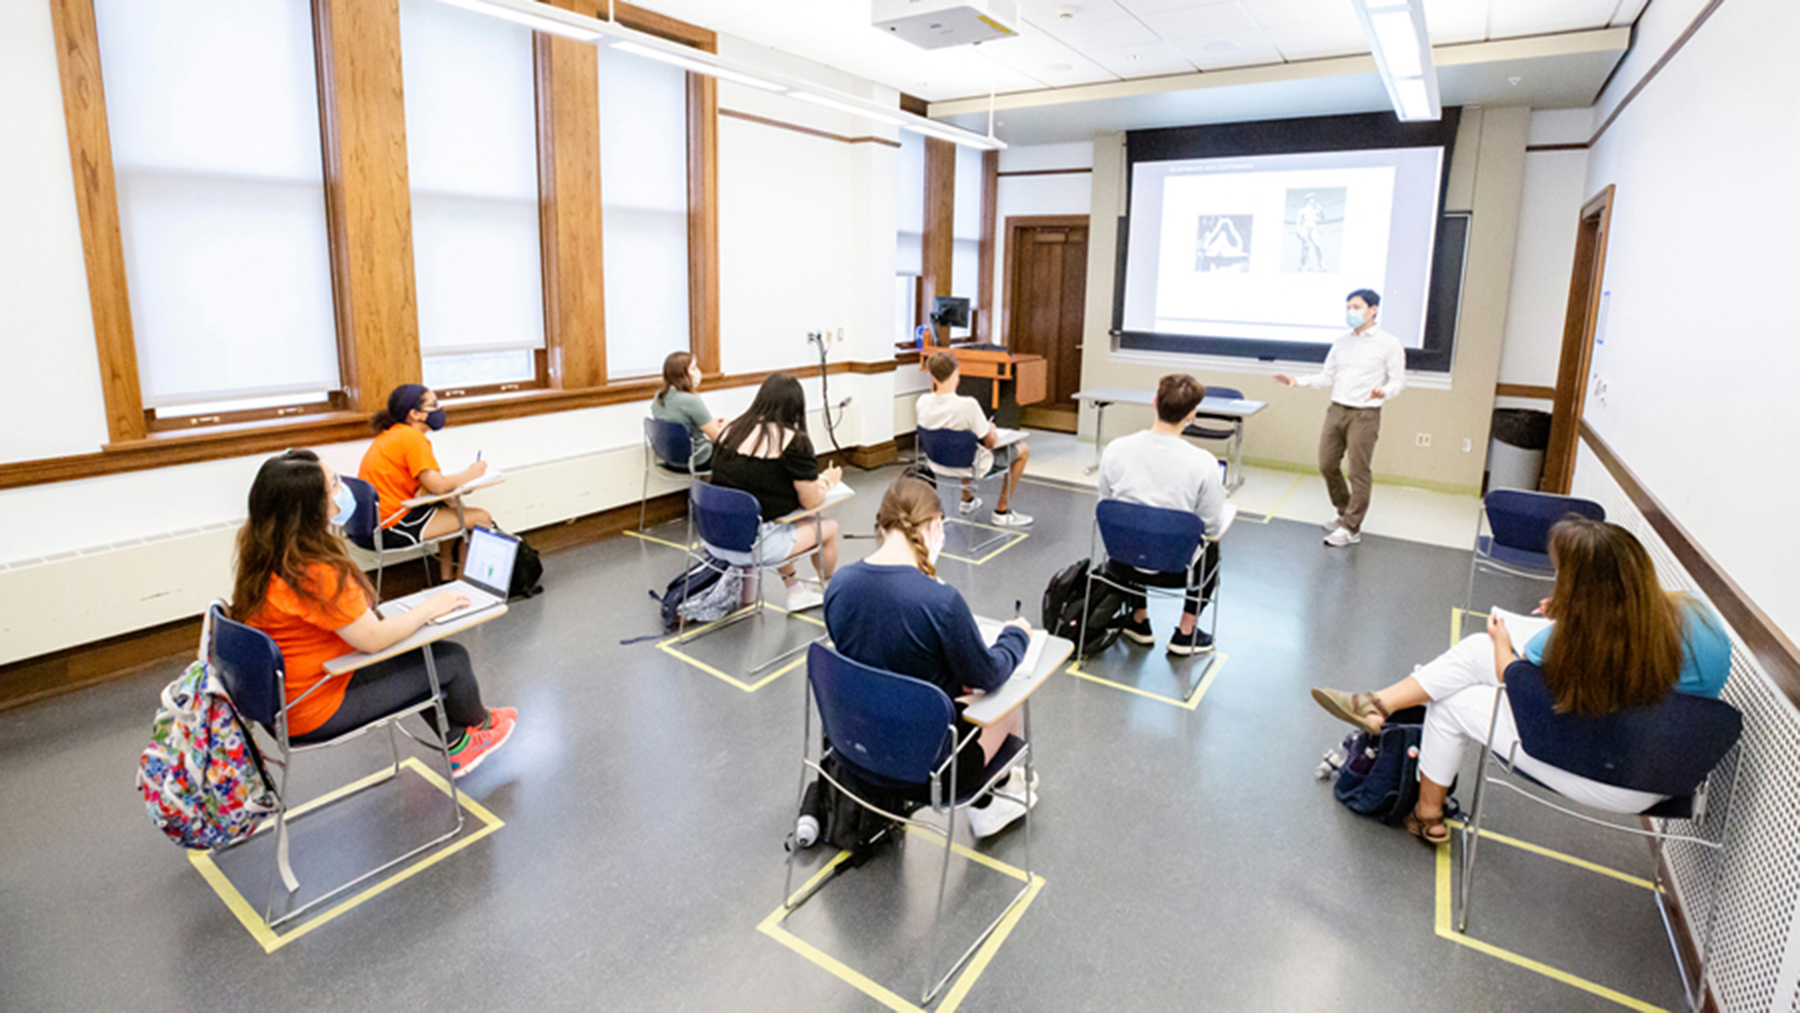 students sit in 'socially distanced' seats during a class at U of I. Photo by Brian Stauffer